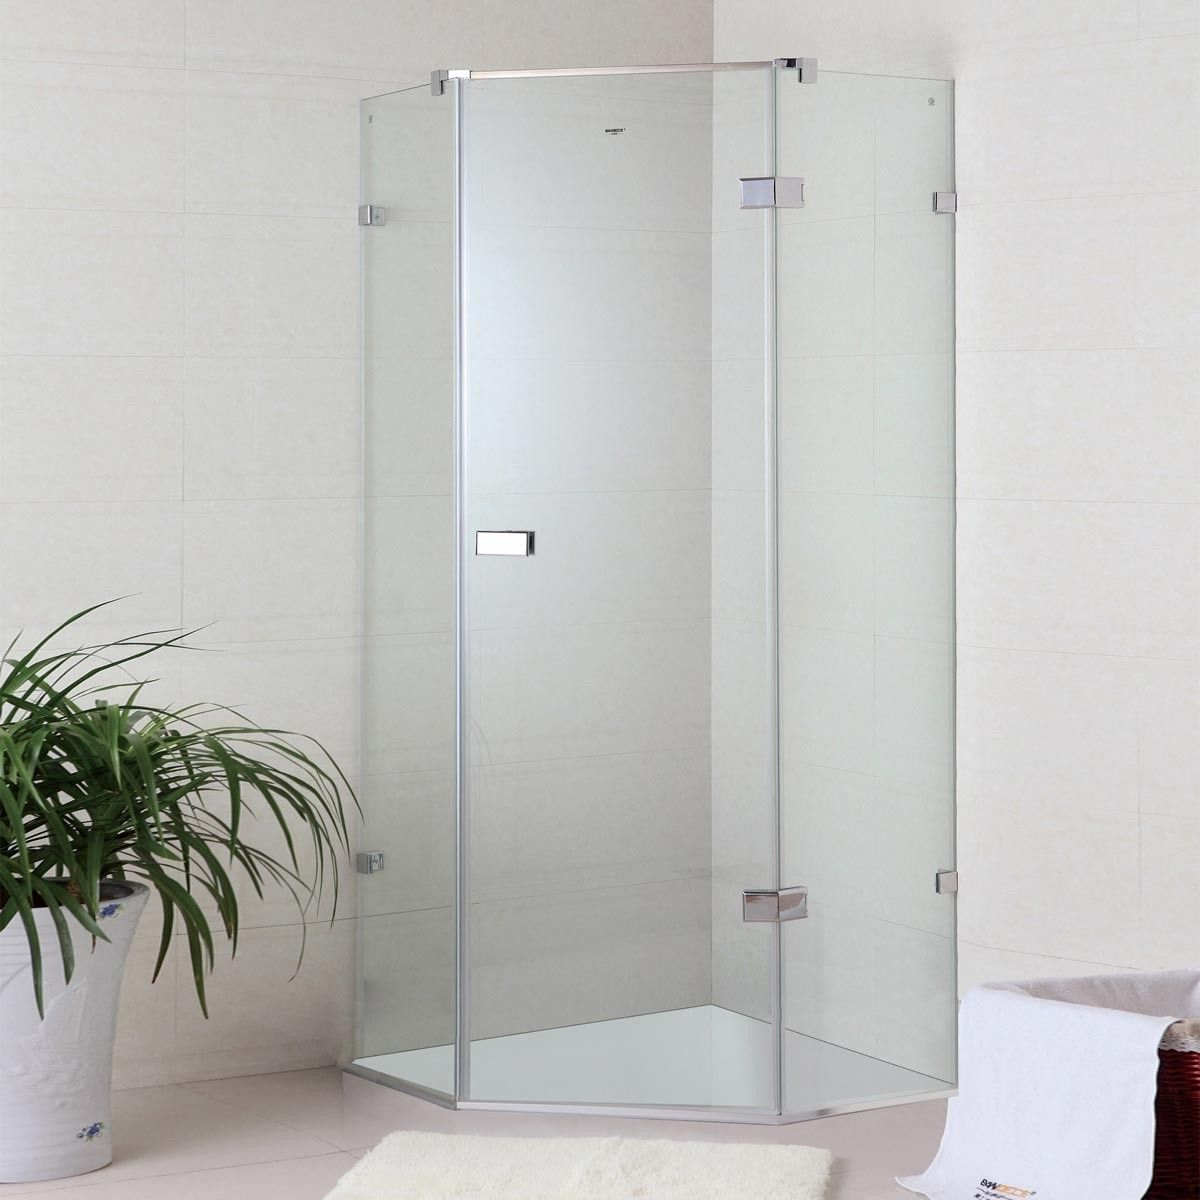 36 x 36 In. (90 x 90 cm) Clear Tempered Glass Coner Shower Stall  (WA-03)